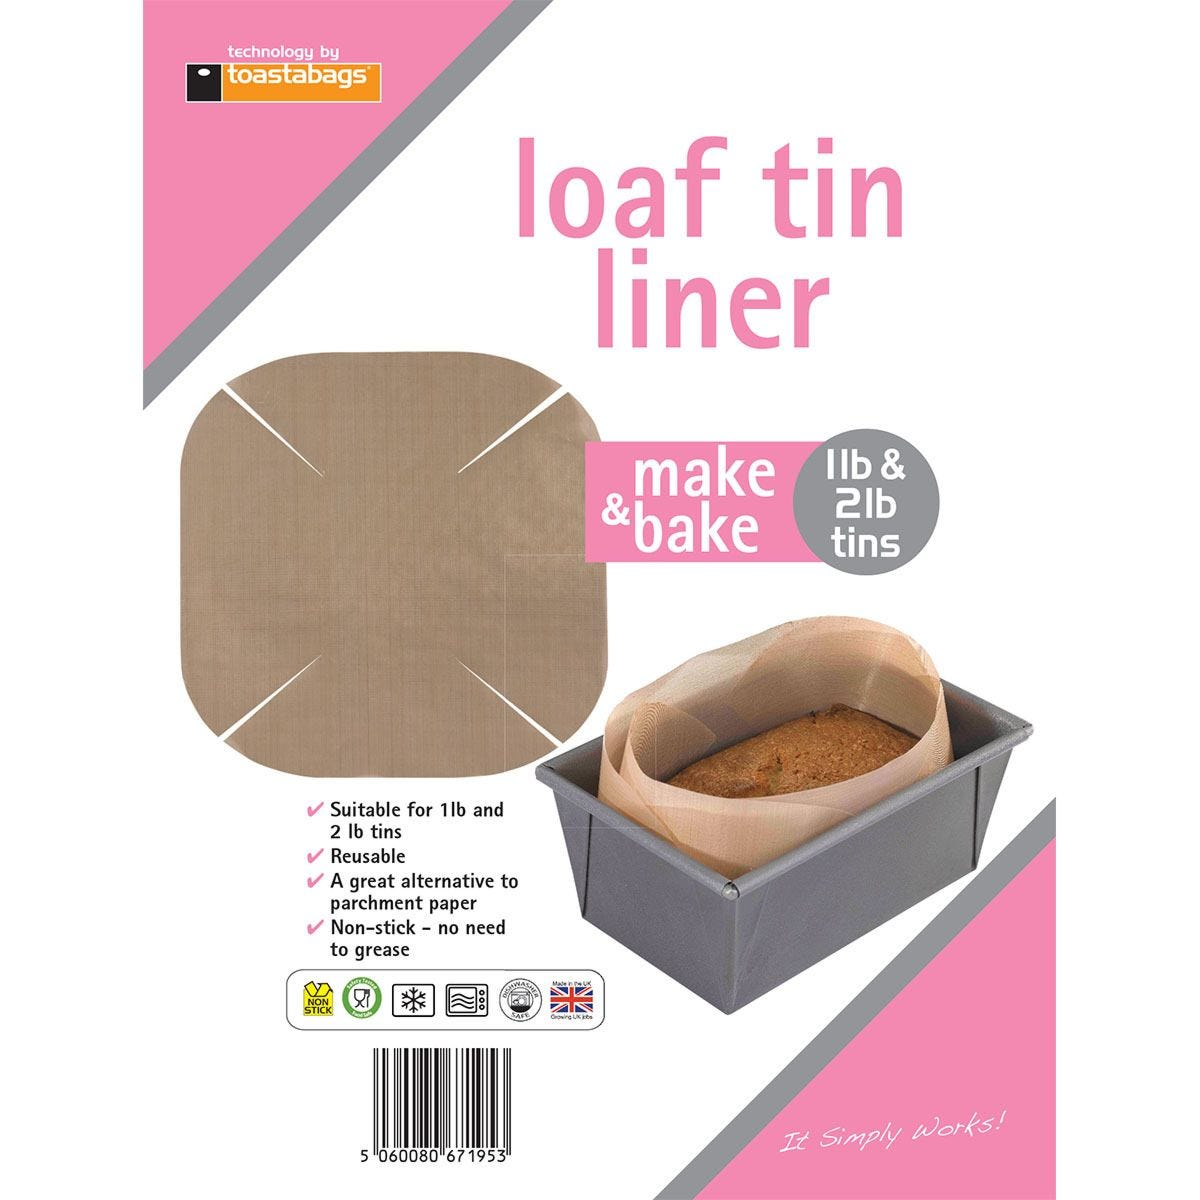 Toastabags Reusable Non-Stick Loaf Tin Liner